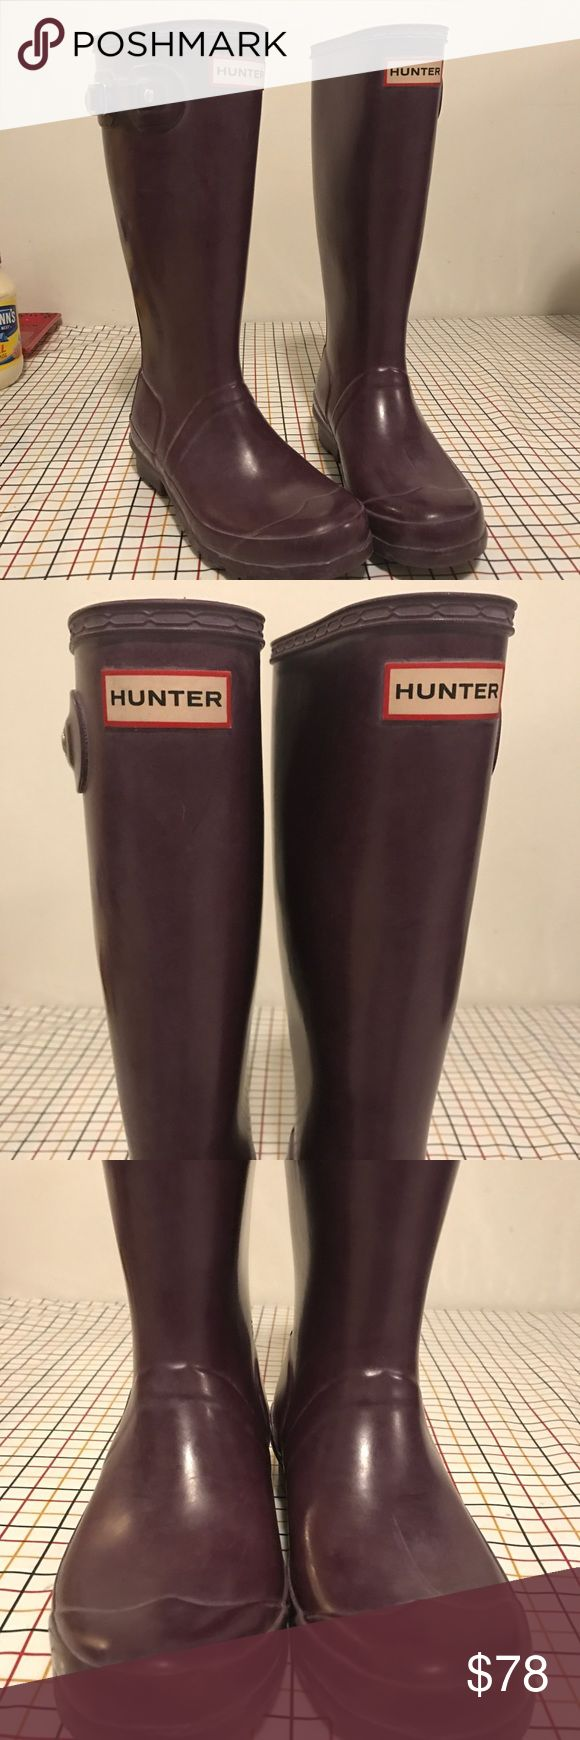 Purple Hunter Boots Size 5 In worn but good condition hunter rain boots  Girls size 5  PRICE IS PRETTY FIRM  They can easily be more cleaned.  Really in very good condition. Hunter Boots Shoes Rain & Snow Boots